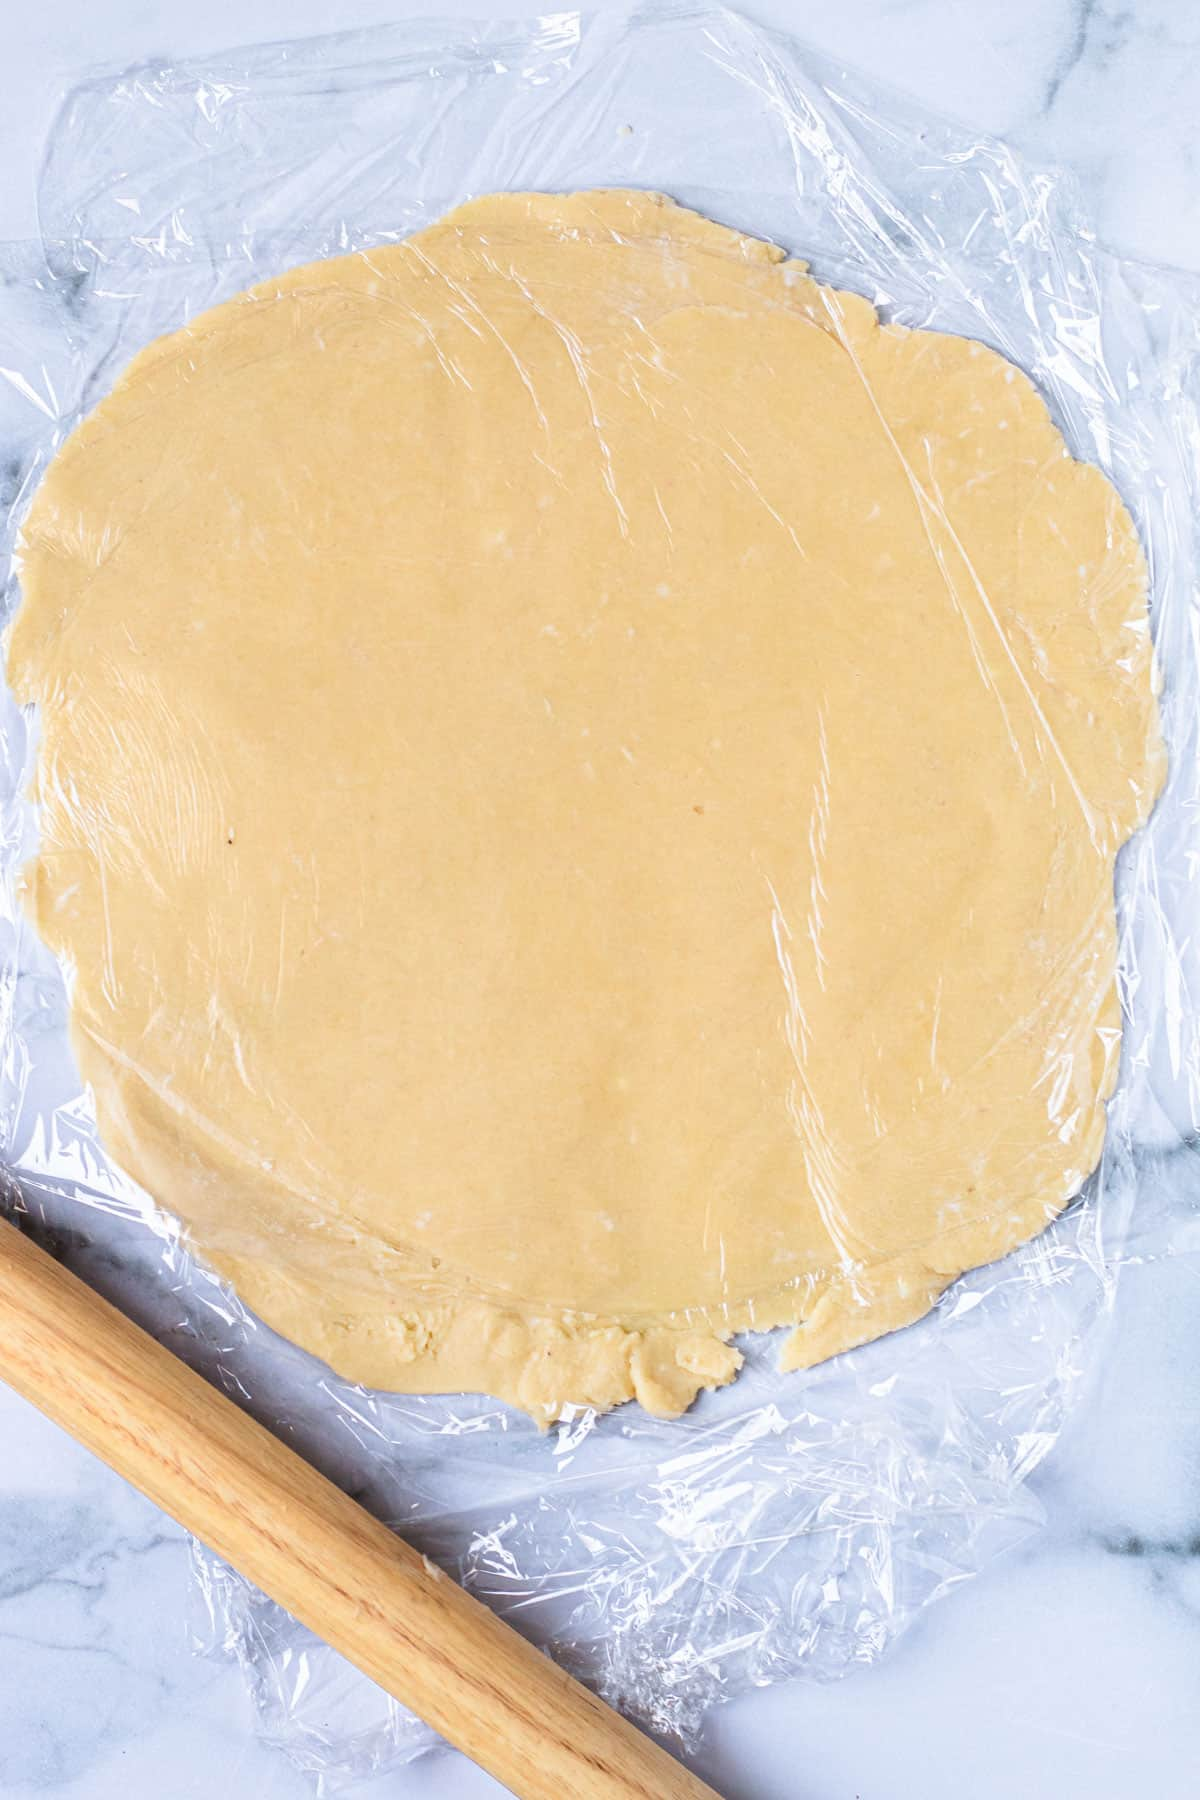 Pate Sablee dough rolled out.